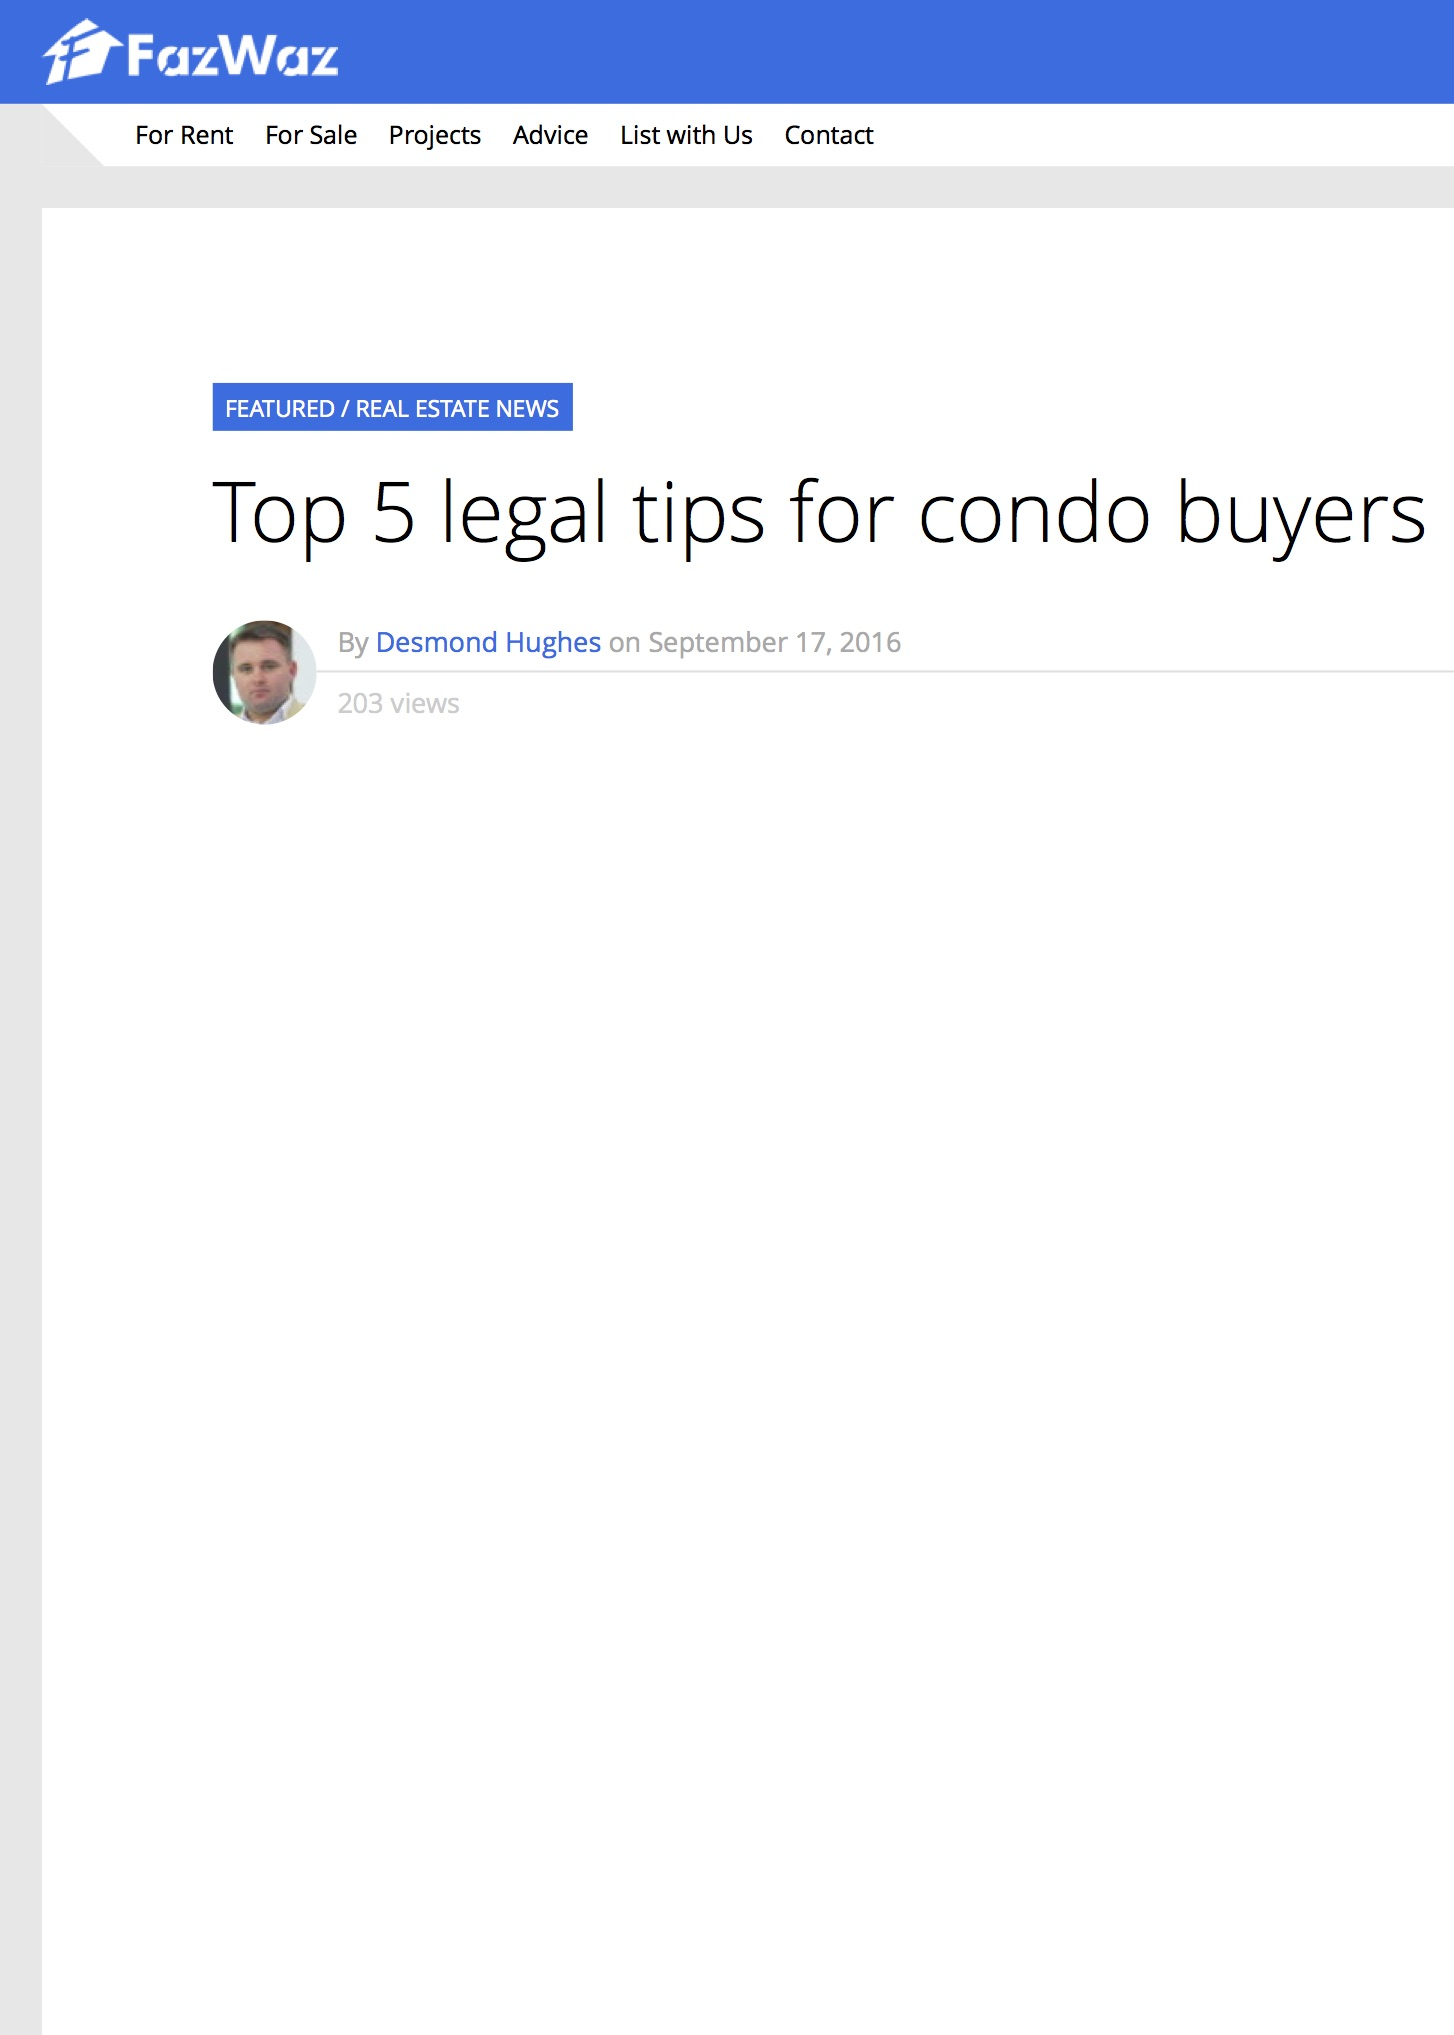 Top 5 Legal Tips for Condo Buyers in Thailand